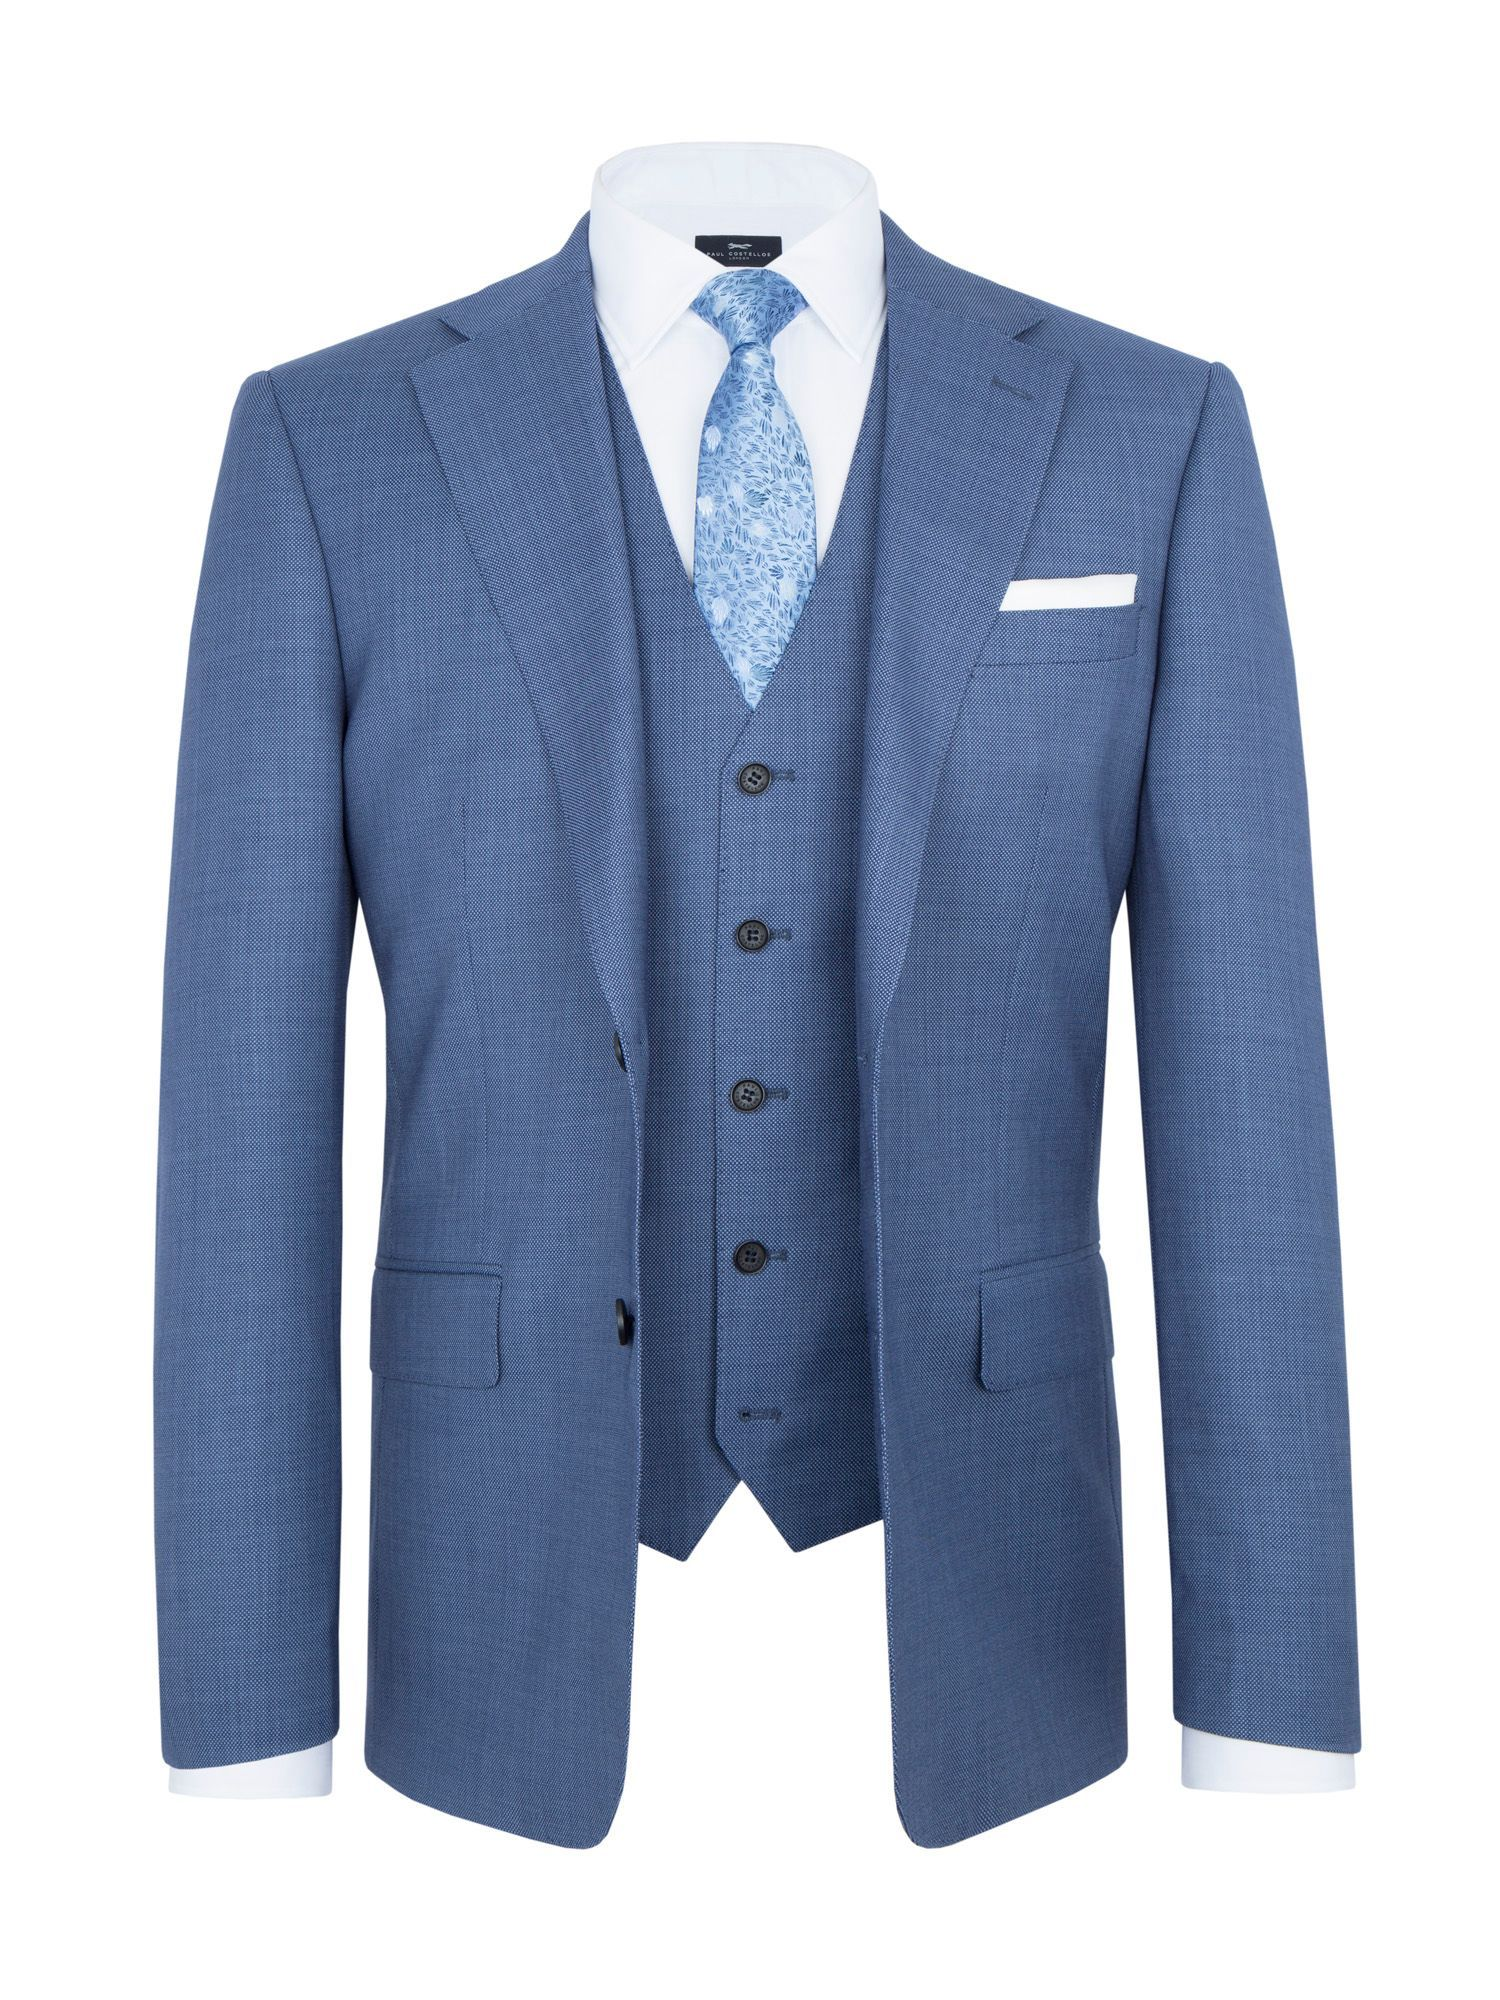 1930s Style Mens Suits - New Suits, Vintage Style | Mens suits and ...